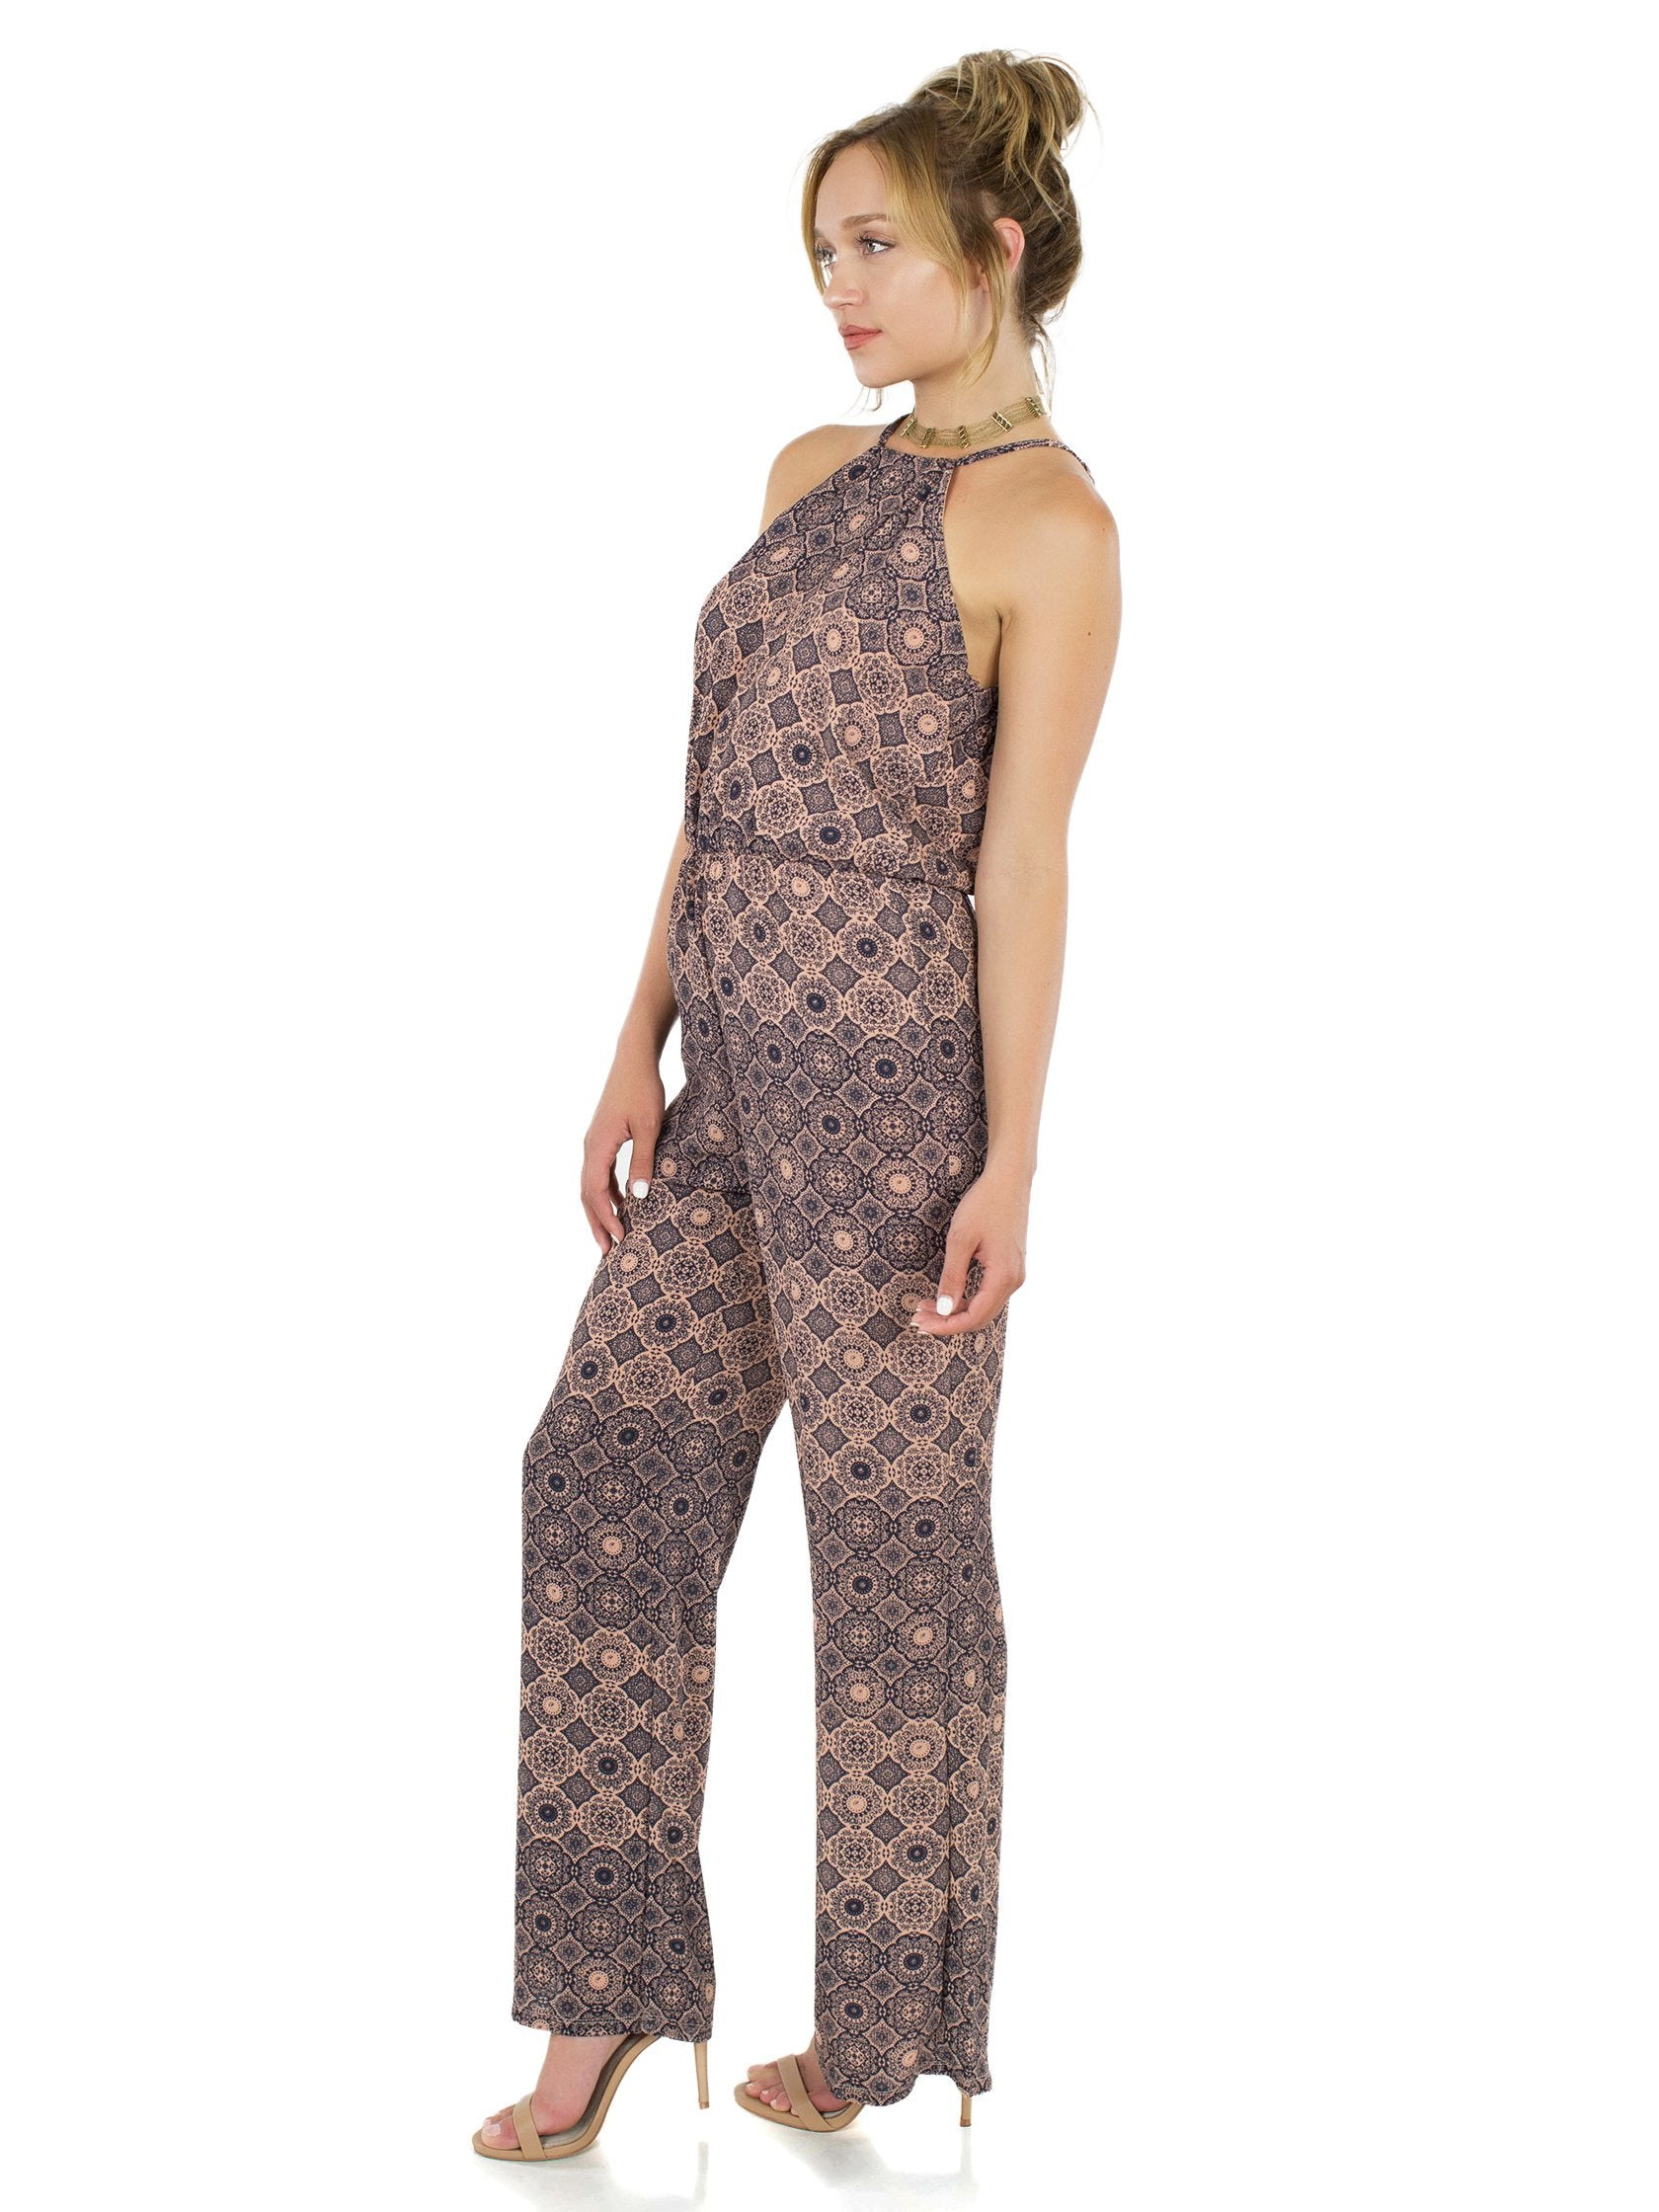 Woman wearing a jumpsuit rental from FashionPass called Desert Sky Jumpsuit